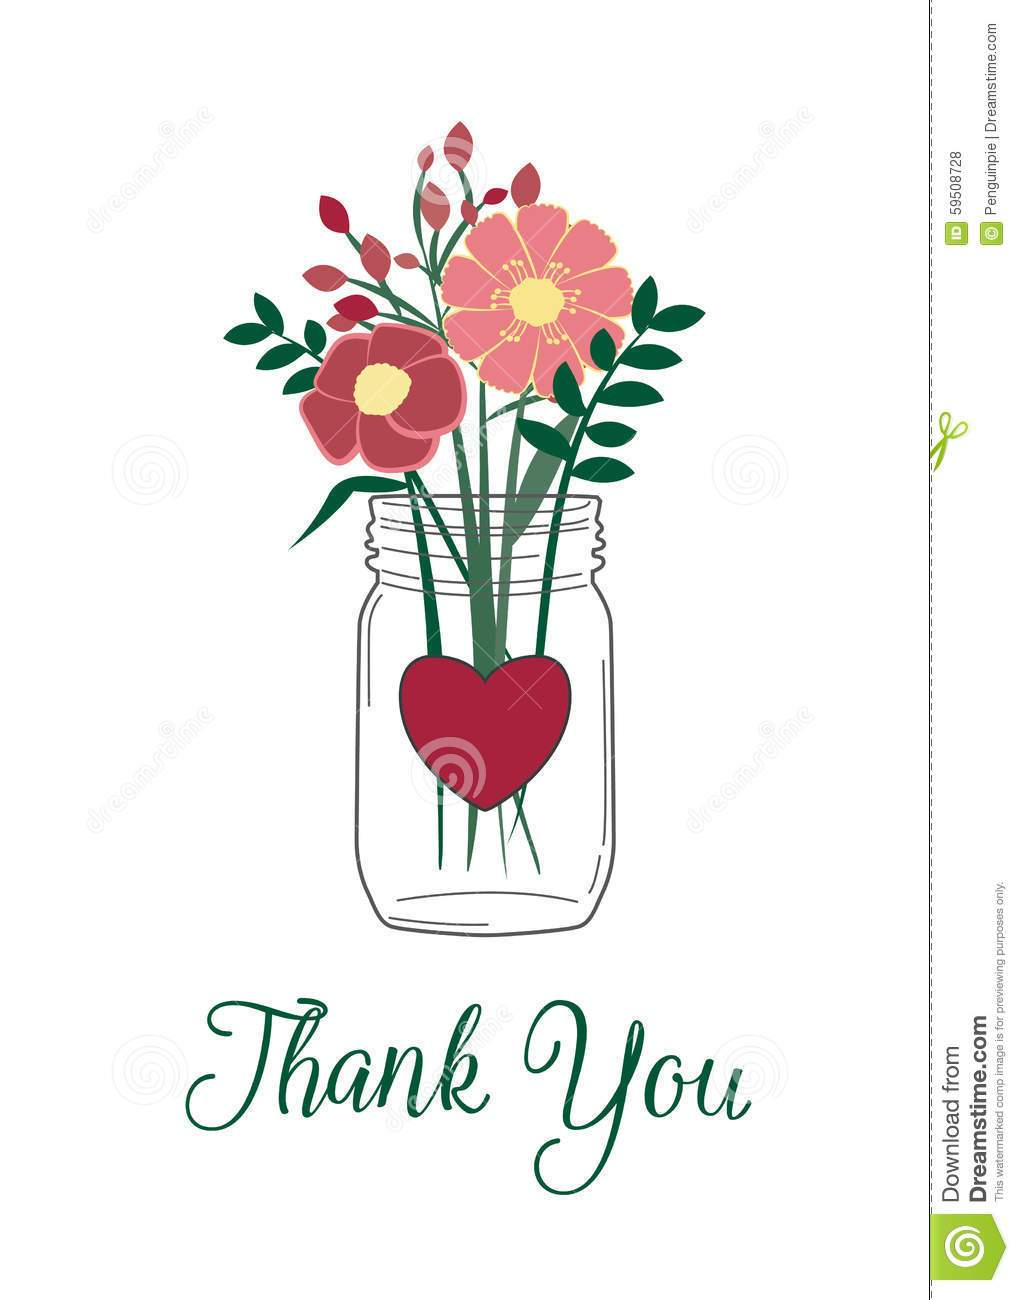 Flower clip art thank you.